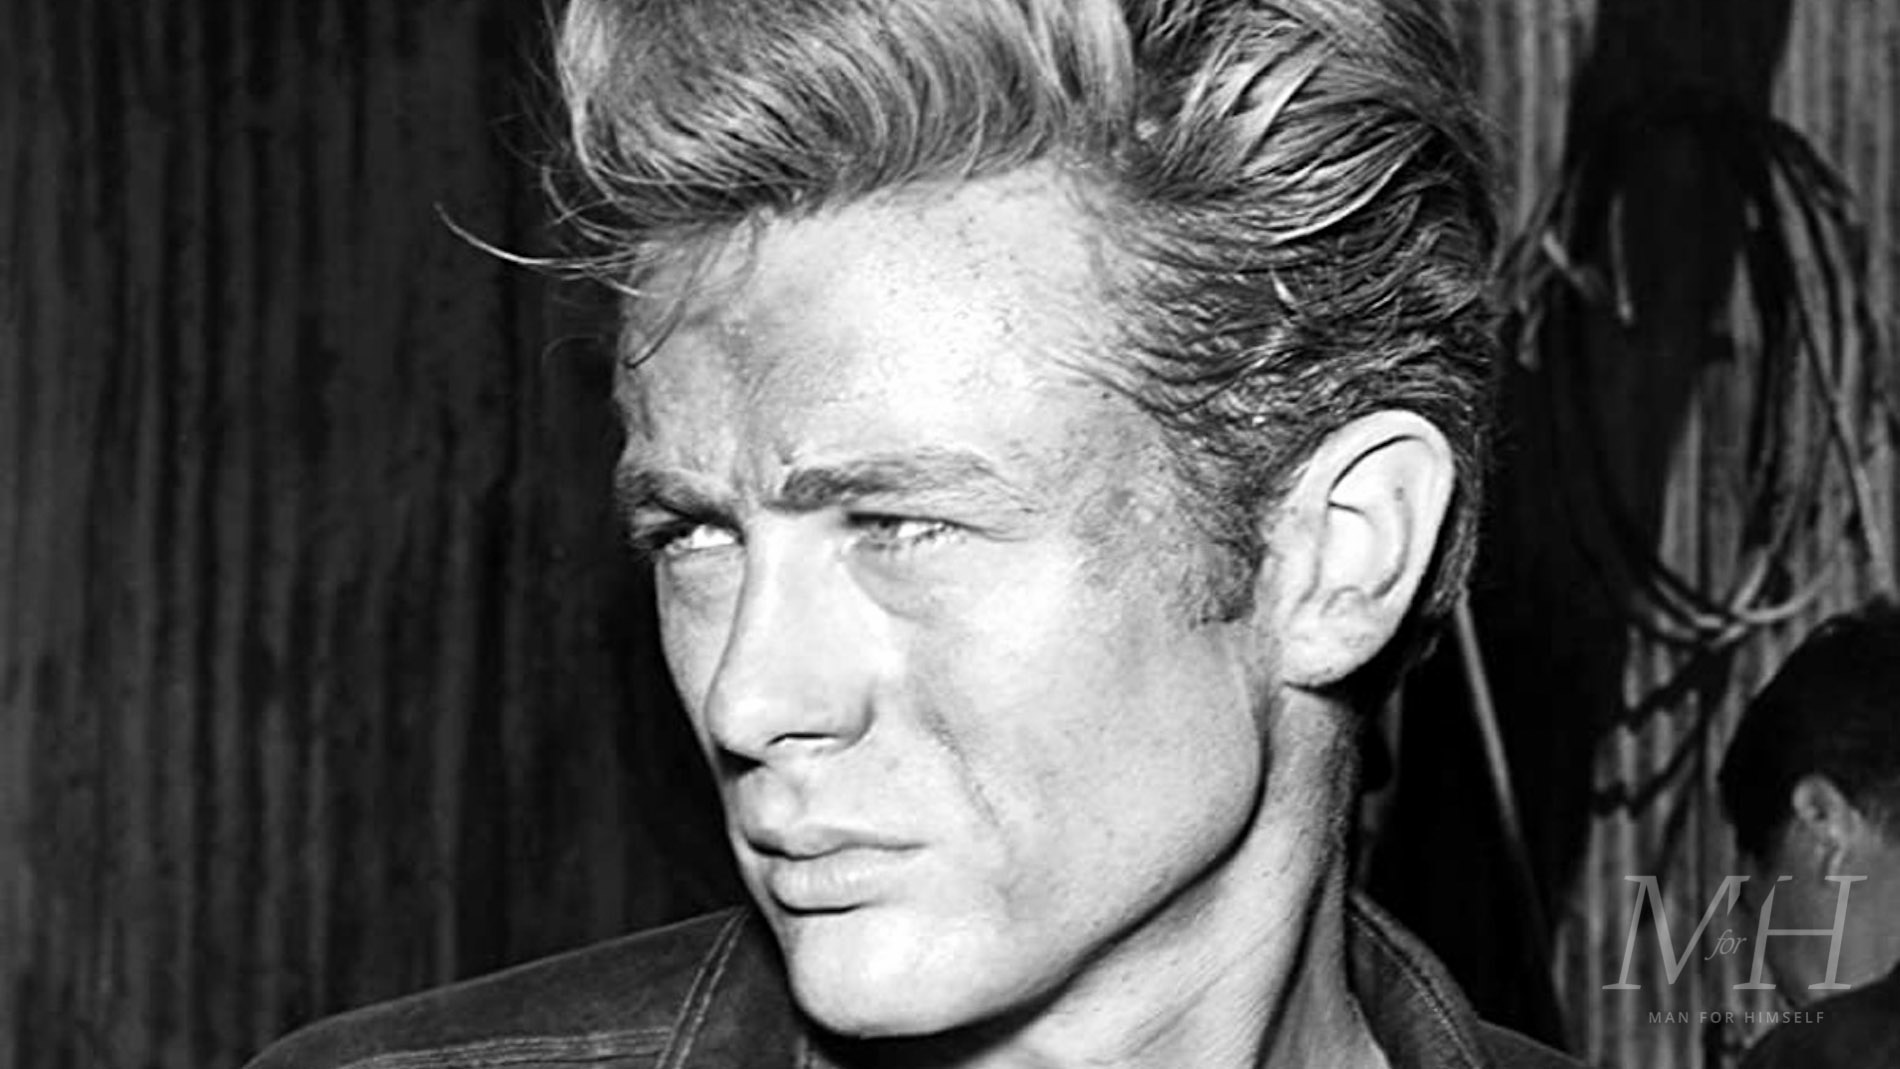 James Dean Swept Back Hairstyle Man For Himself